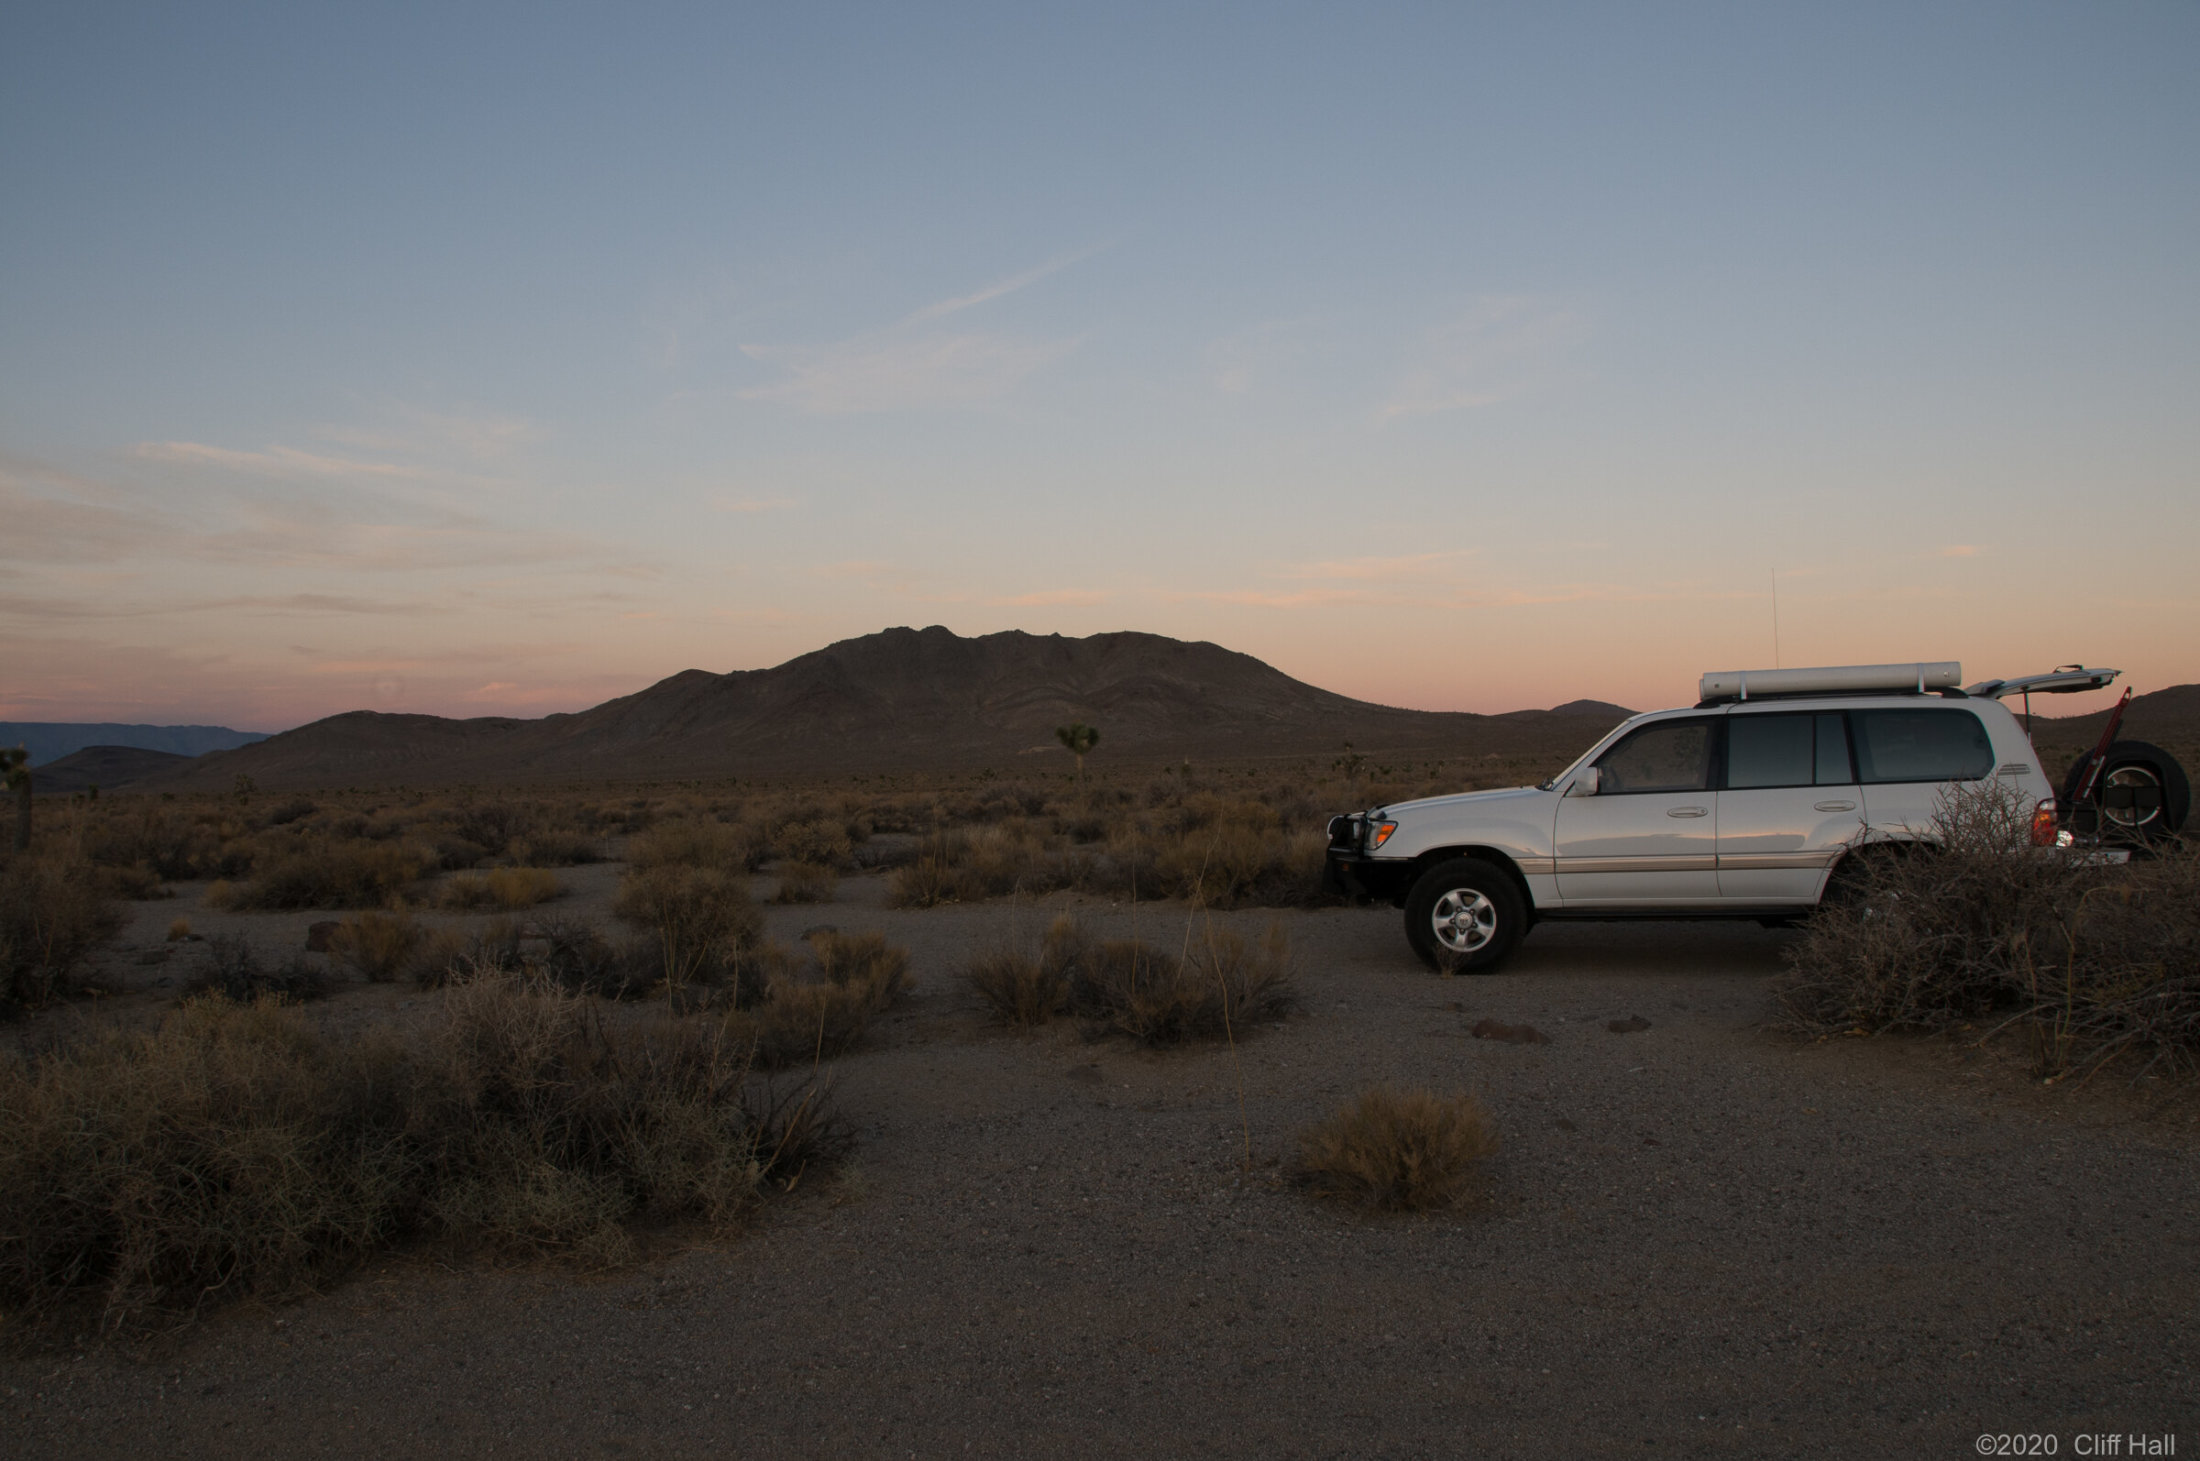 First night out, camping in Death Valley Nat Park